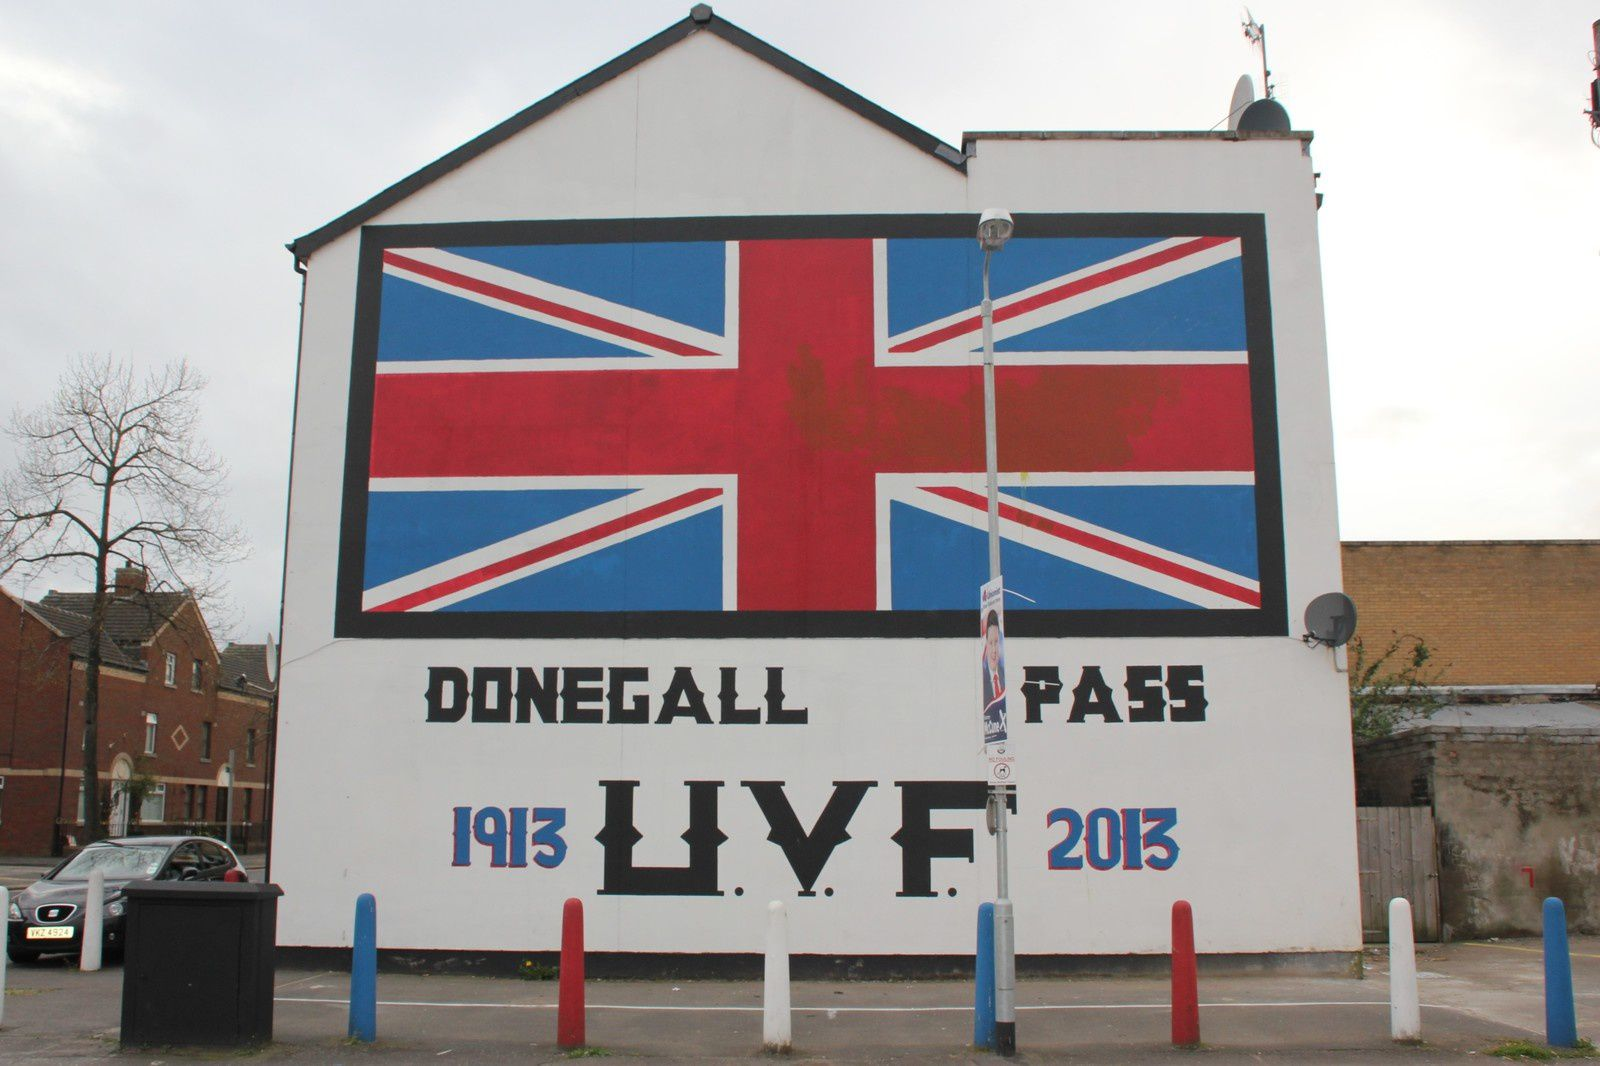 611) Donegall Pass, South Belfast